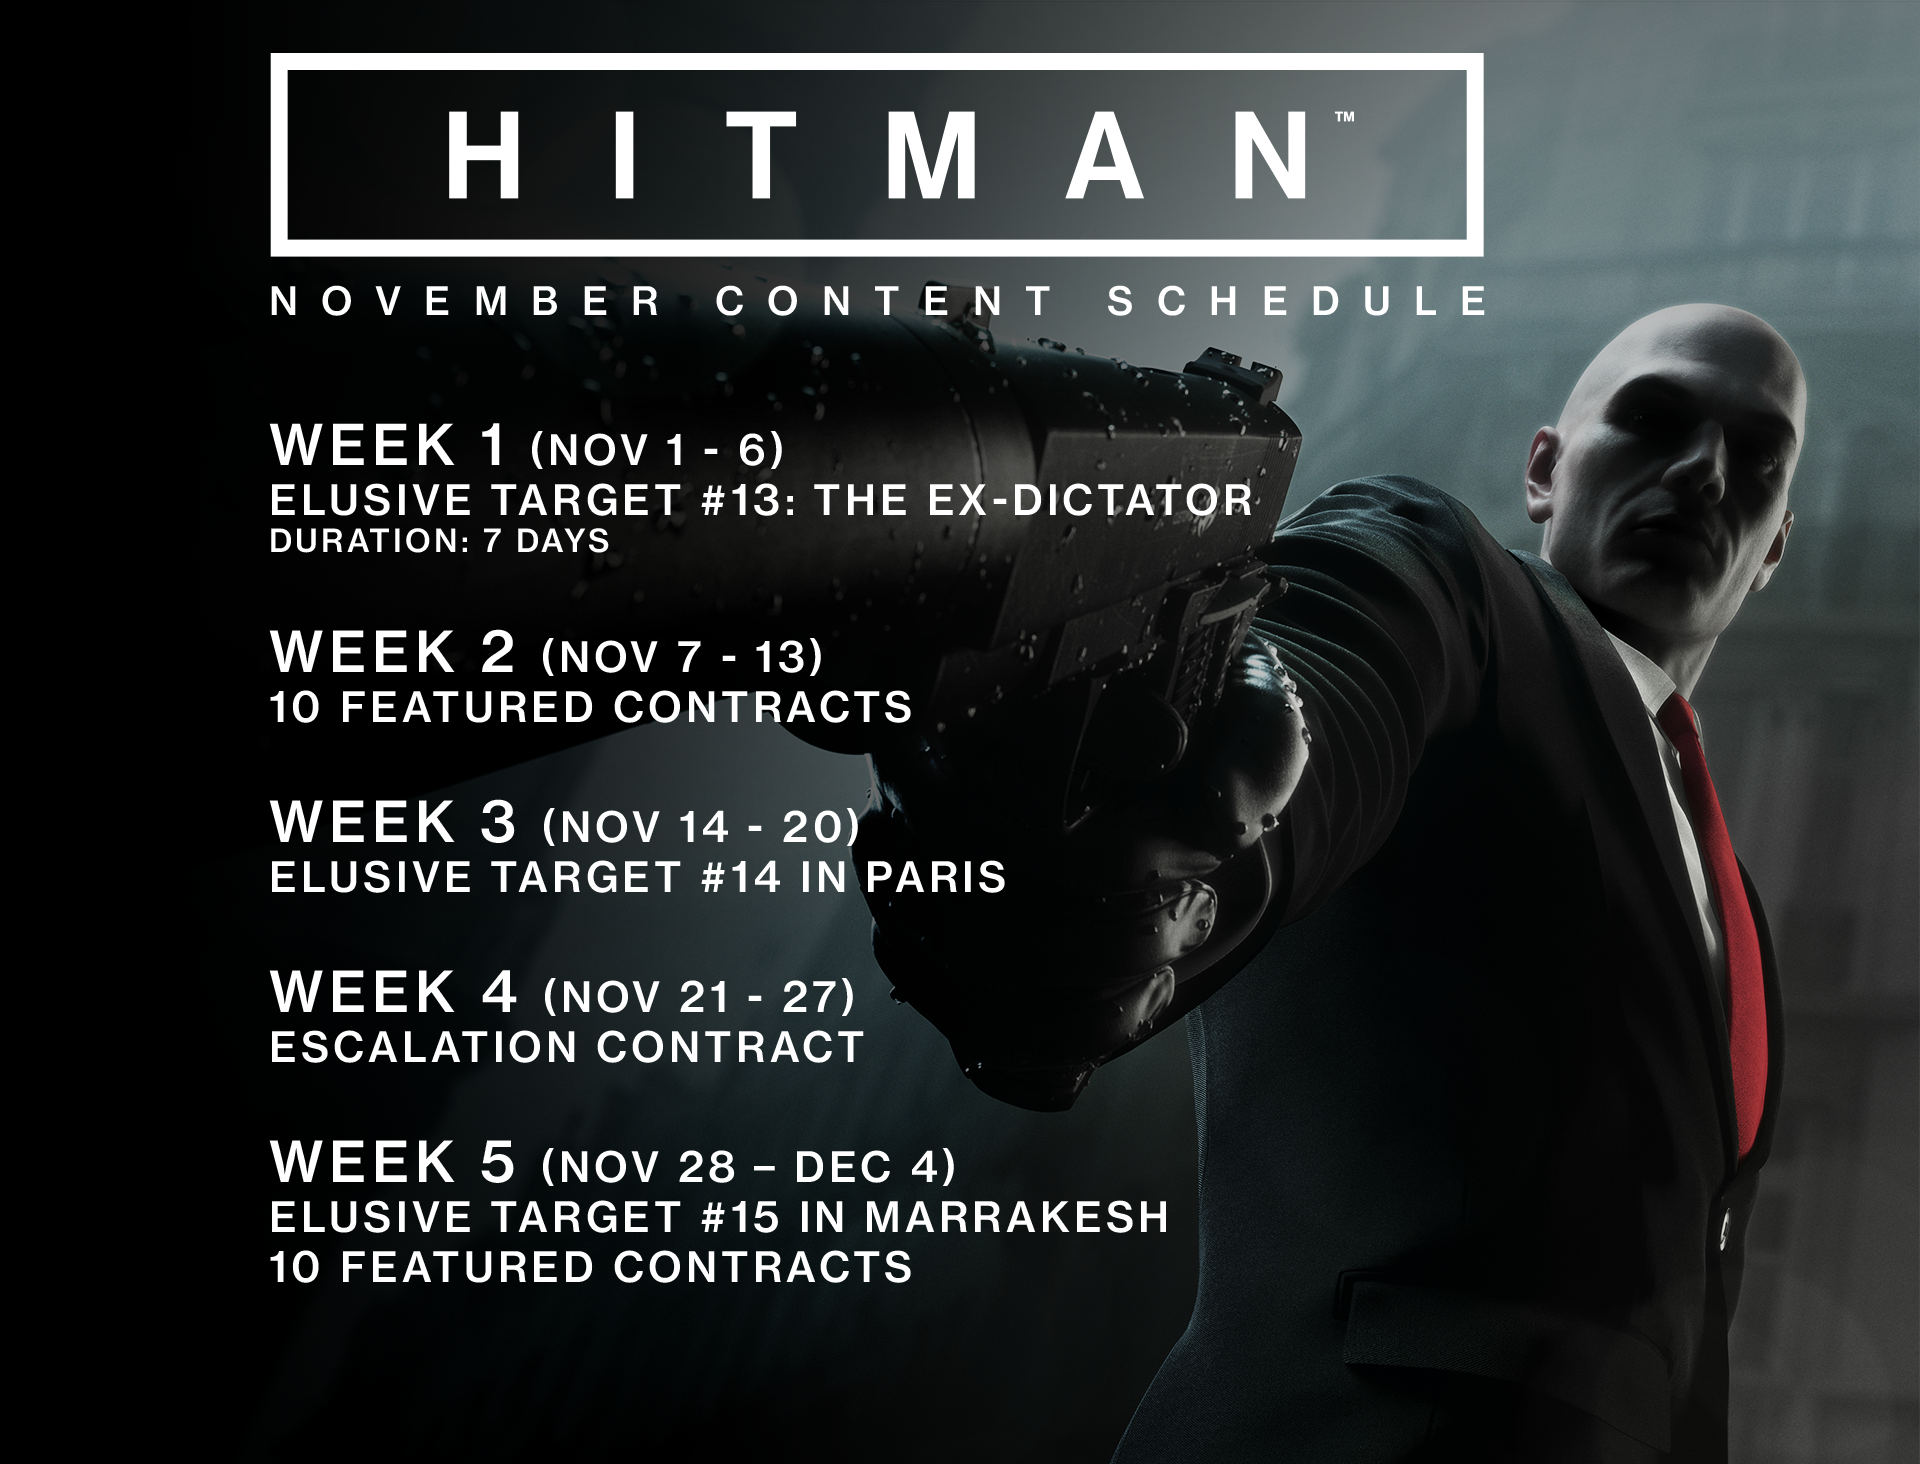 Jan 24 2017 Elusive Target 19 Arrives This Week Hitman Travisioi The Blackmailer Is Your Next Elusive Target To Arrive In Hitman He Will Be In Paris For 10 Days And If This Is The First Elusive Target You Complete In Paris You Ll Earn The Tuxedo With